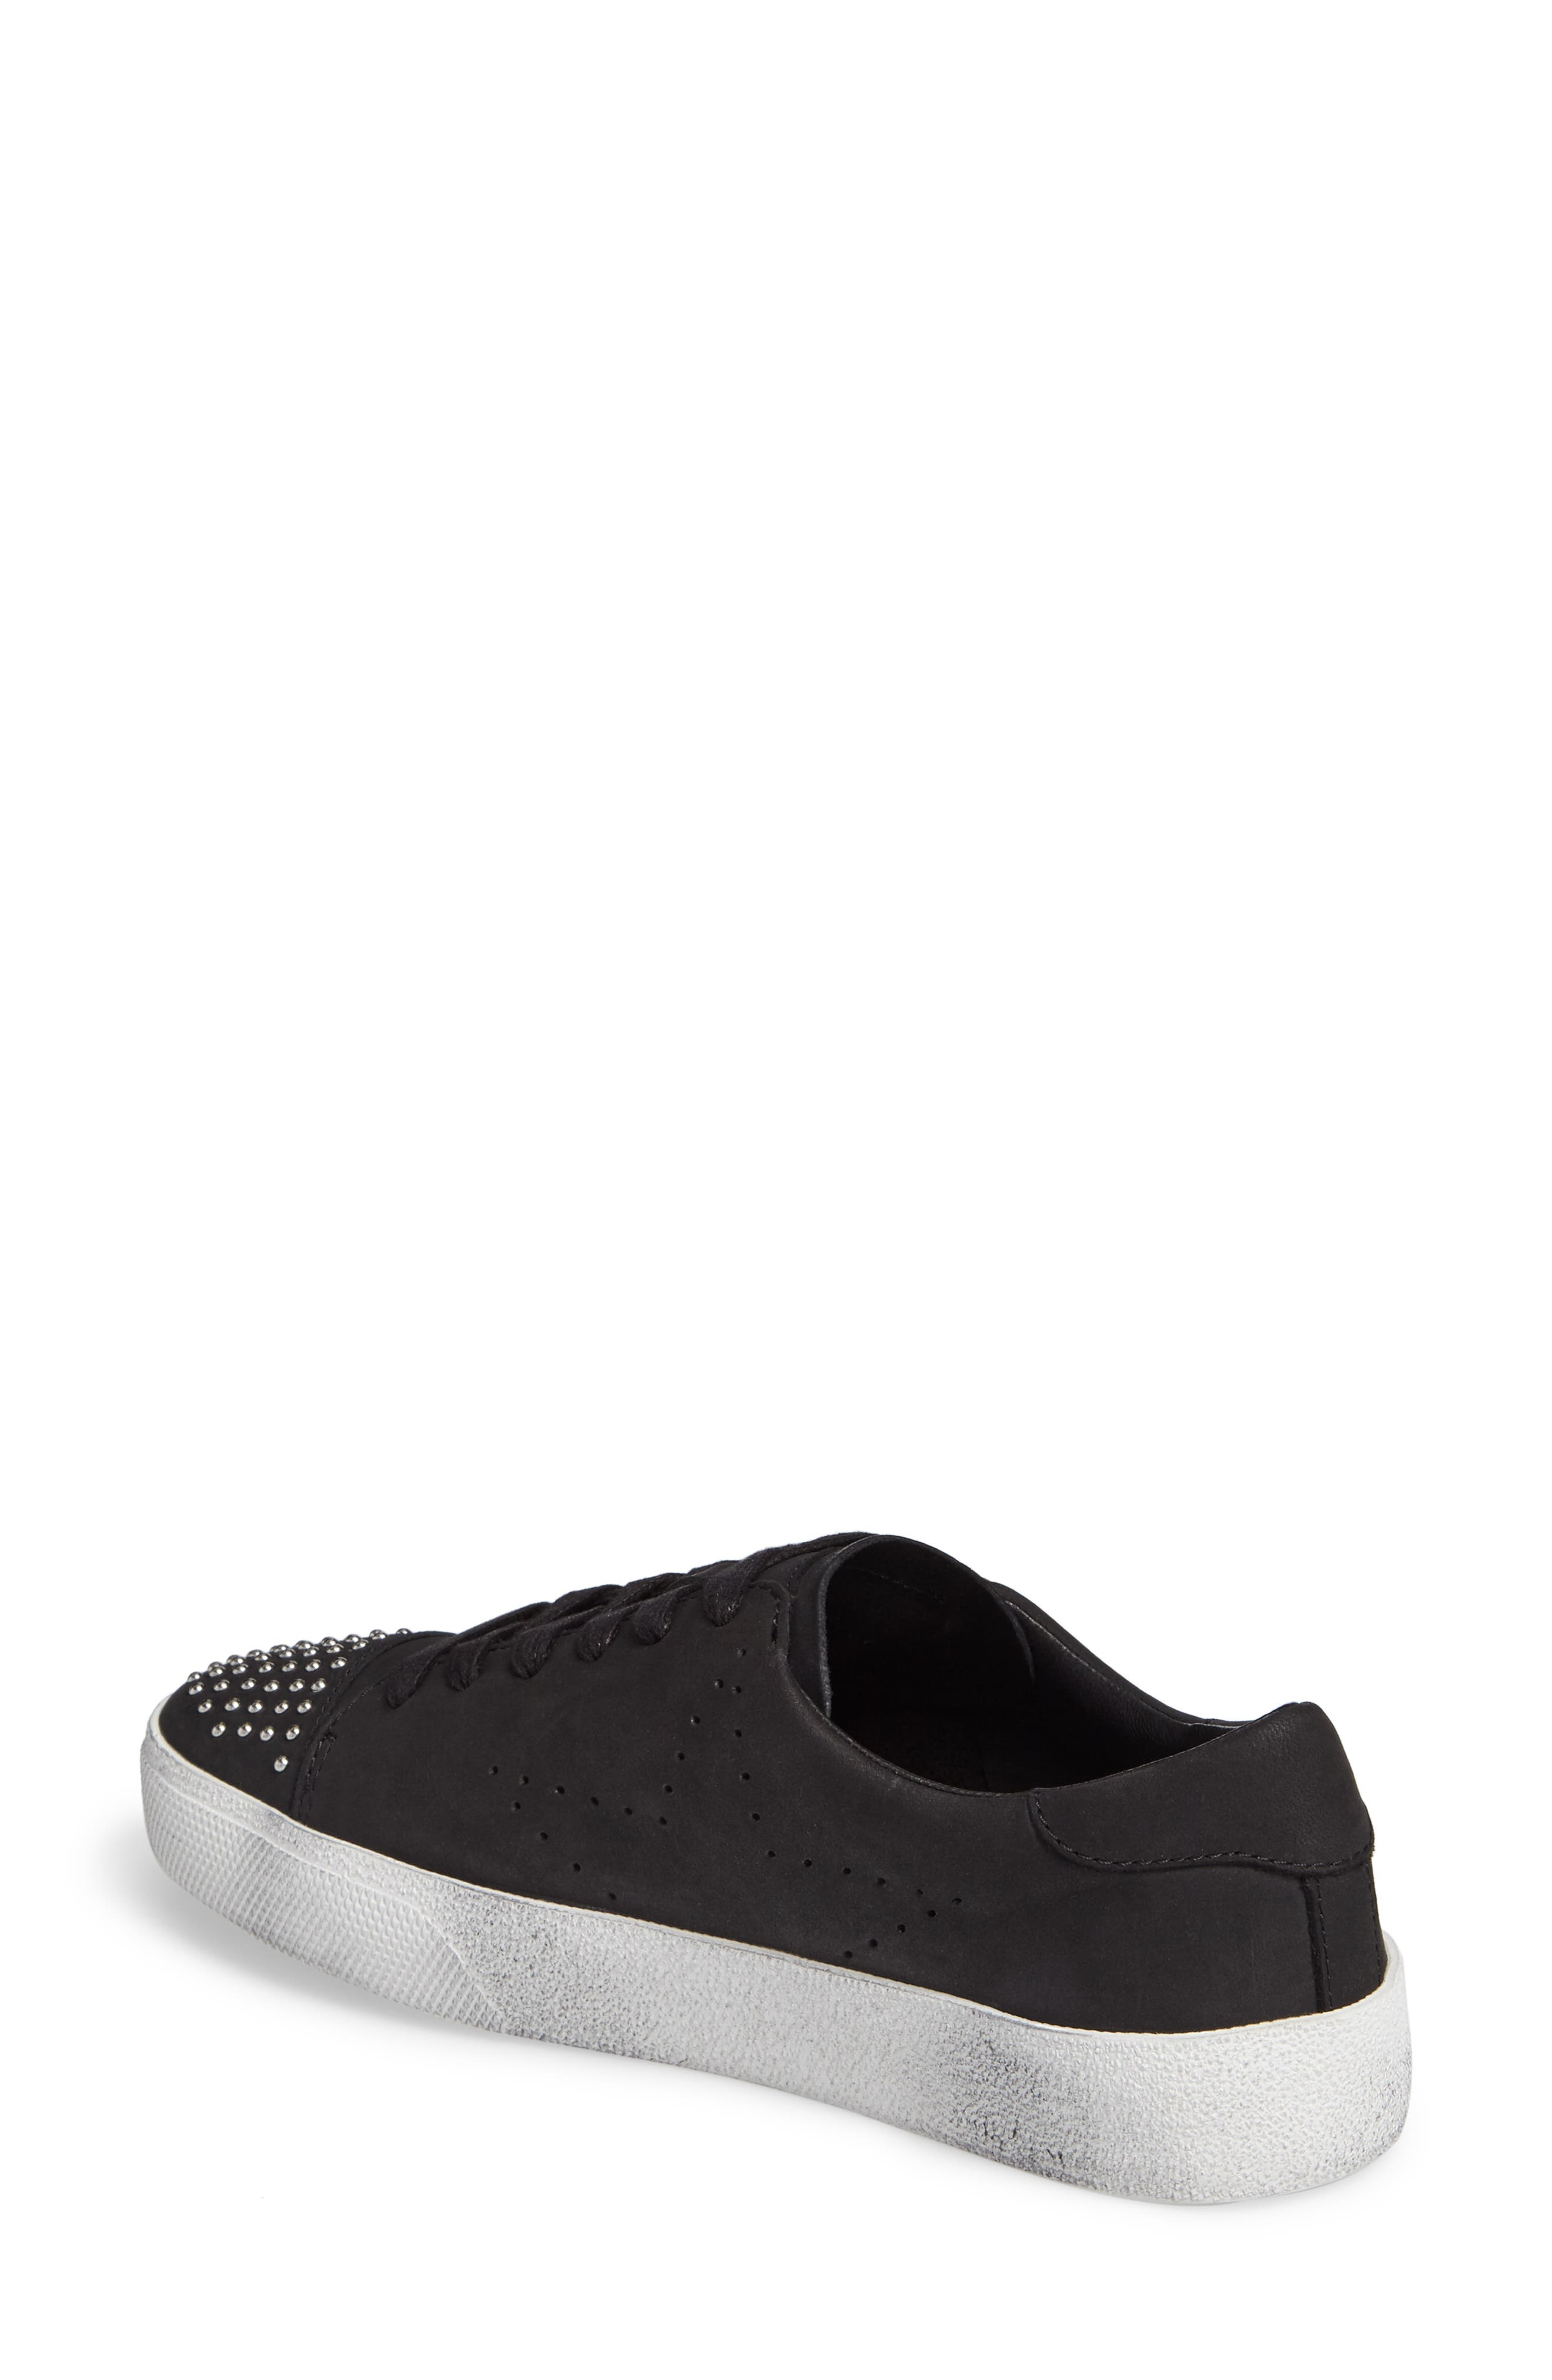 Catcall Studded Sneaker,                             Alternate thumbnail 2, color,                             002